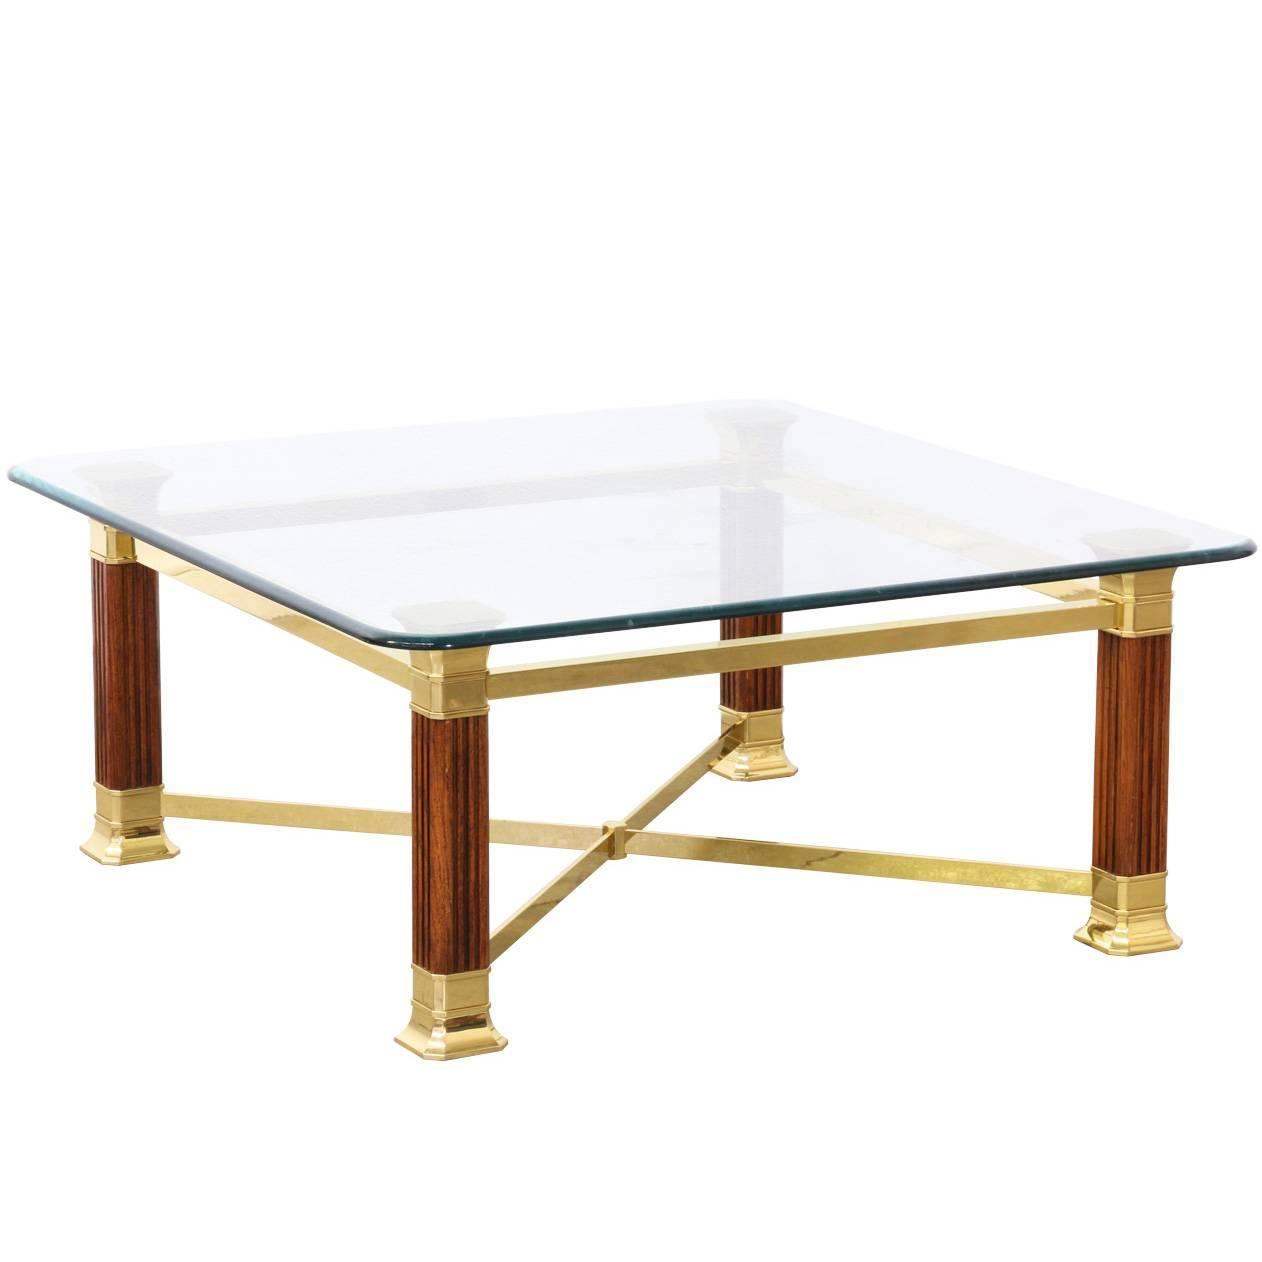 Italian brass column style base coffee table with glass top at 1stdibs Tuscan style coffee table